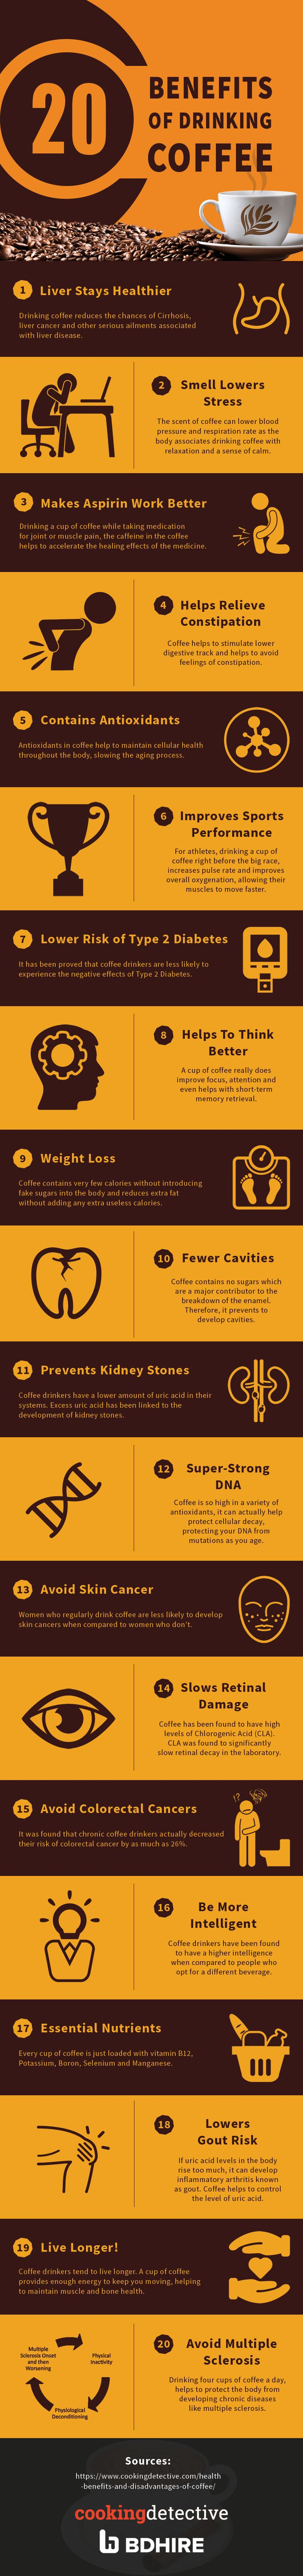 [Infographic] Various Health Benefits of Coffee. Learn before you drink coffee. Check the article for the details of #Coffee's health benefits and the potential effects from over consumption.